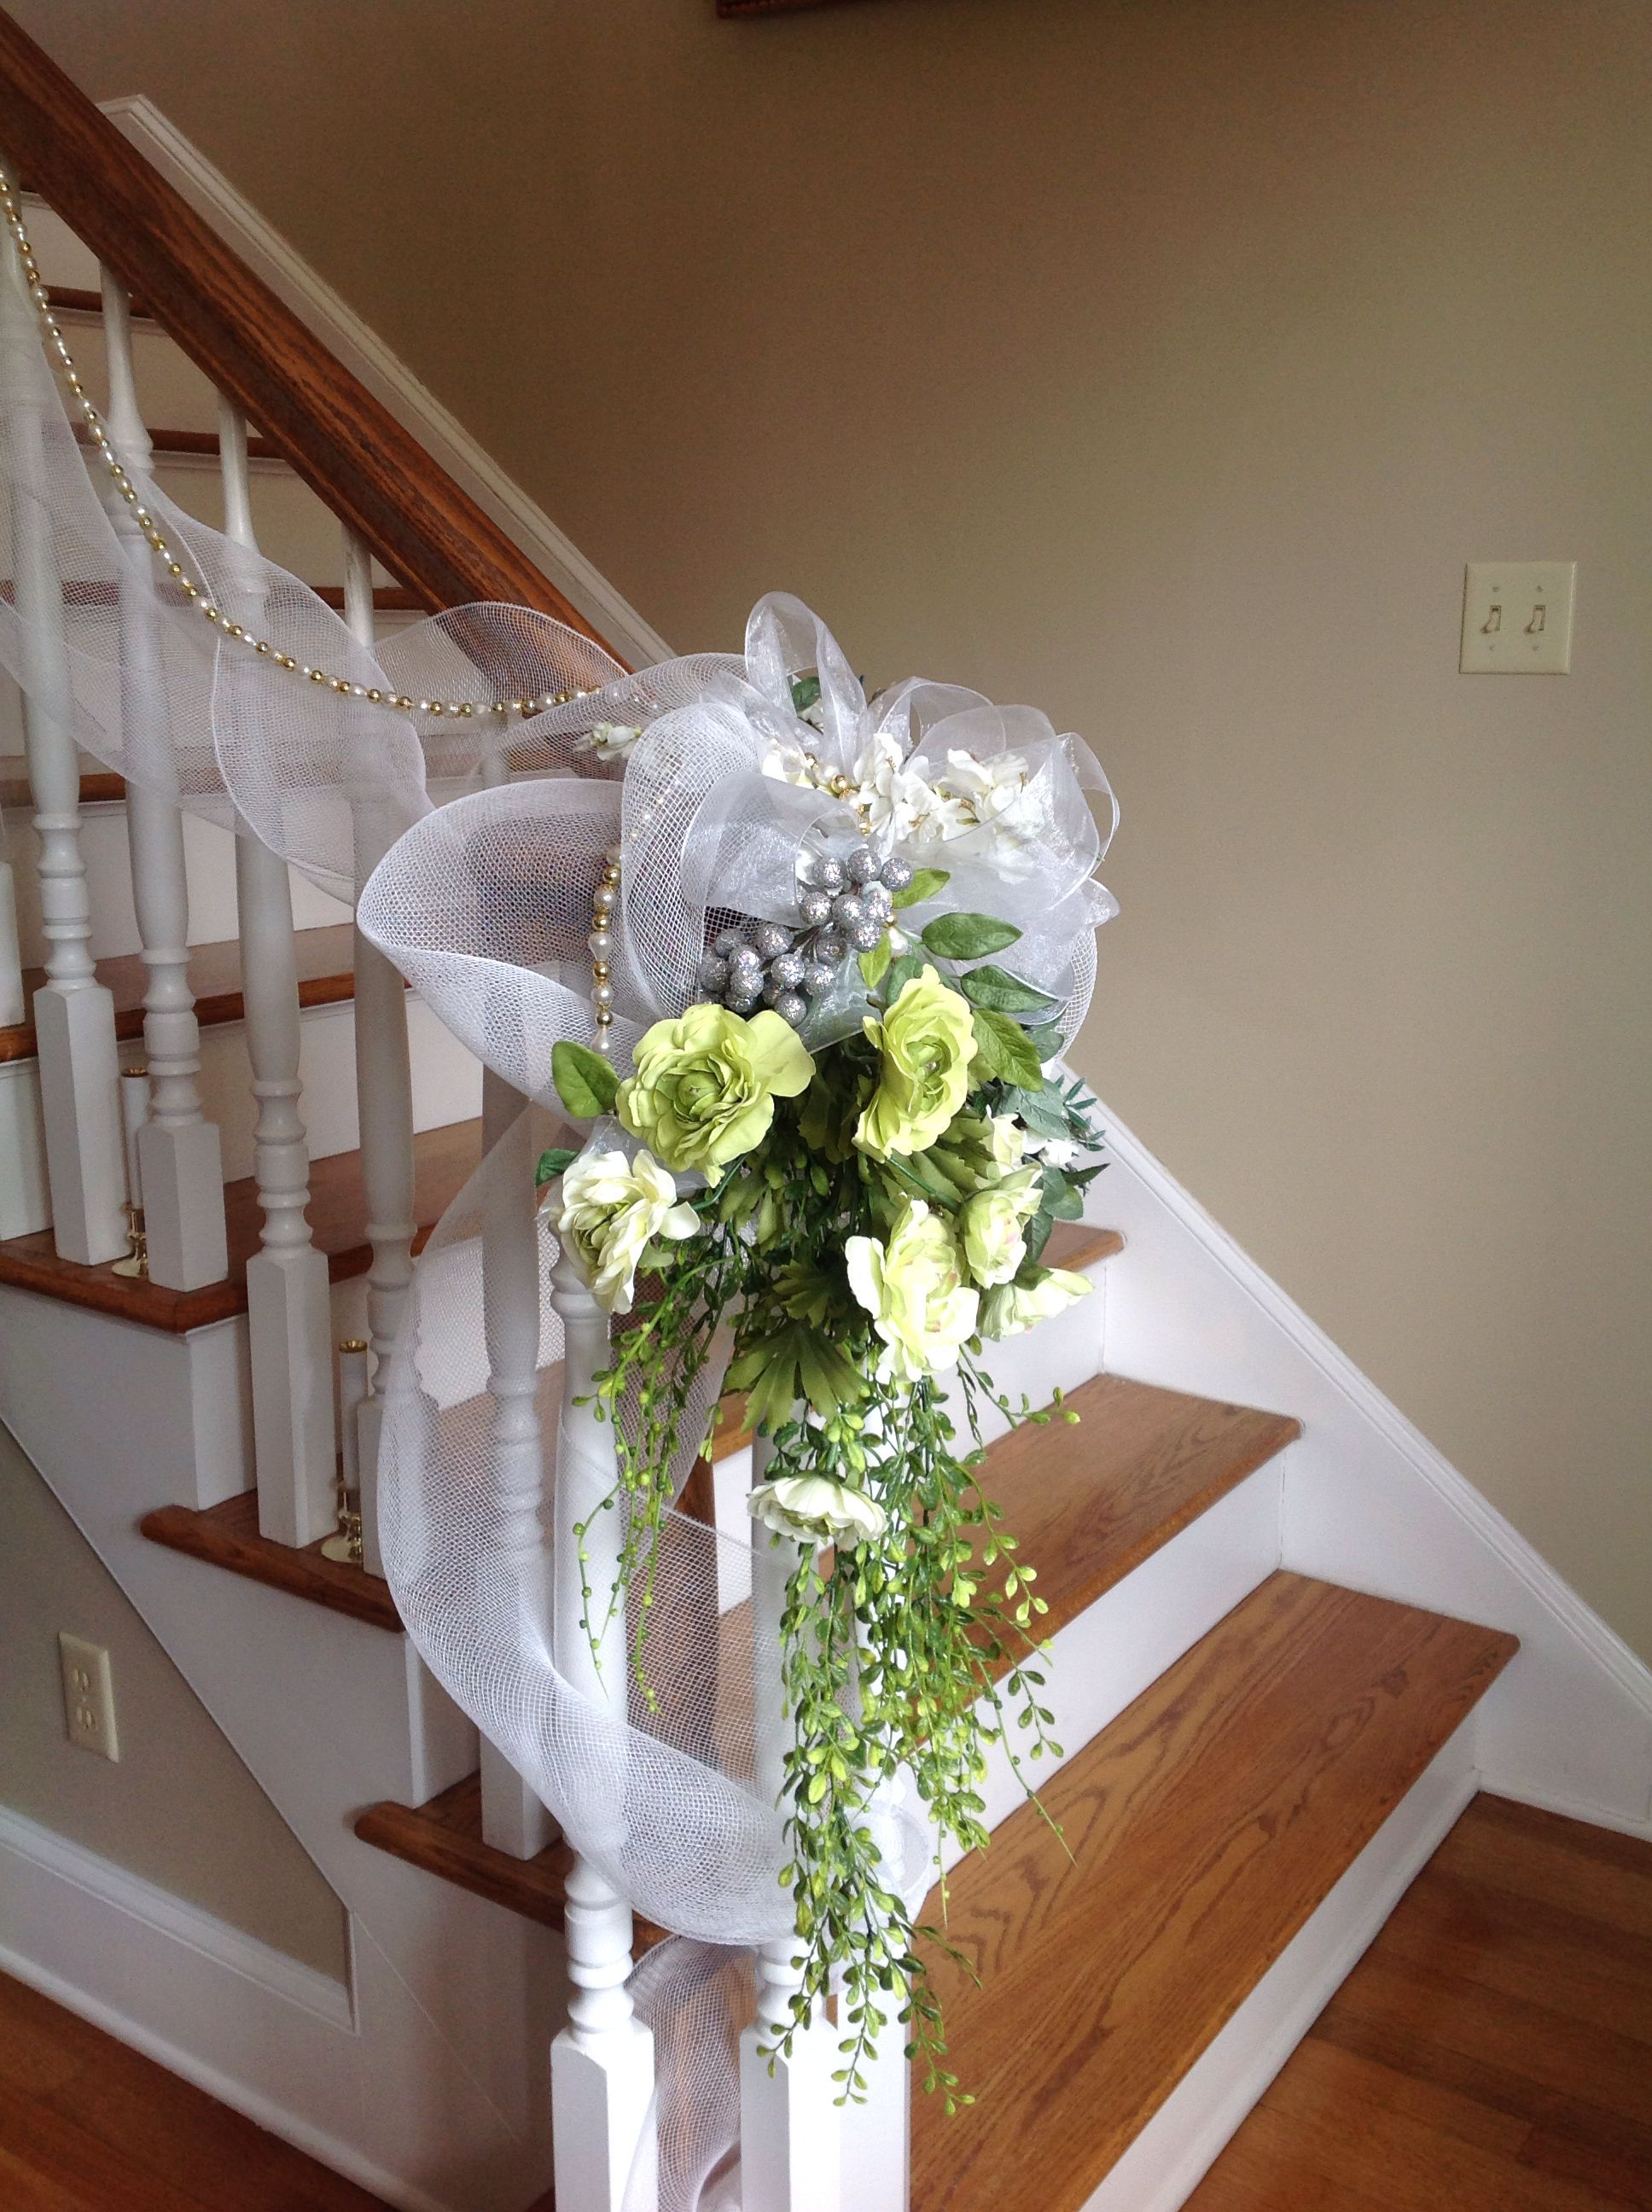 Floral arrangement for staircase. Wedding staircase